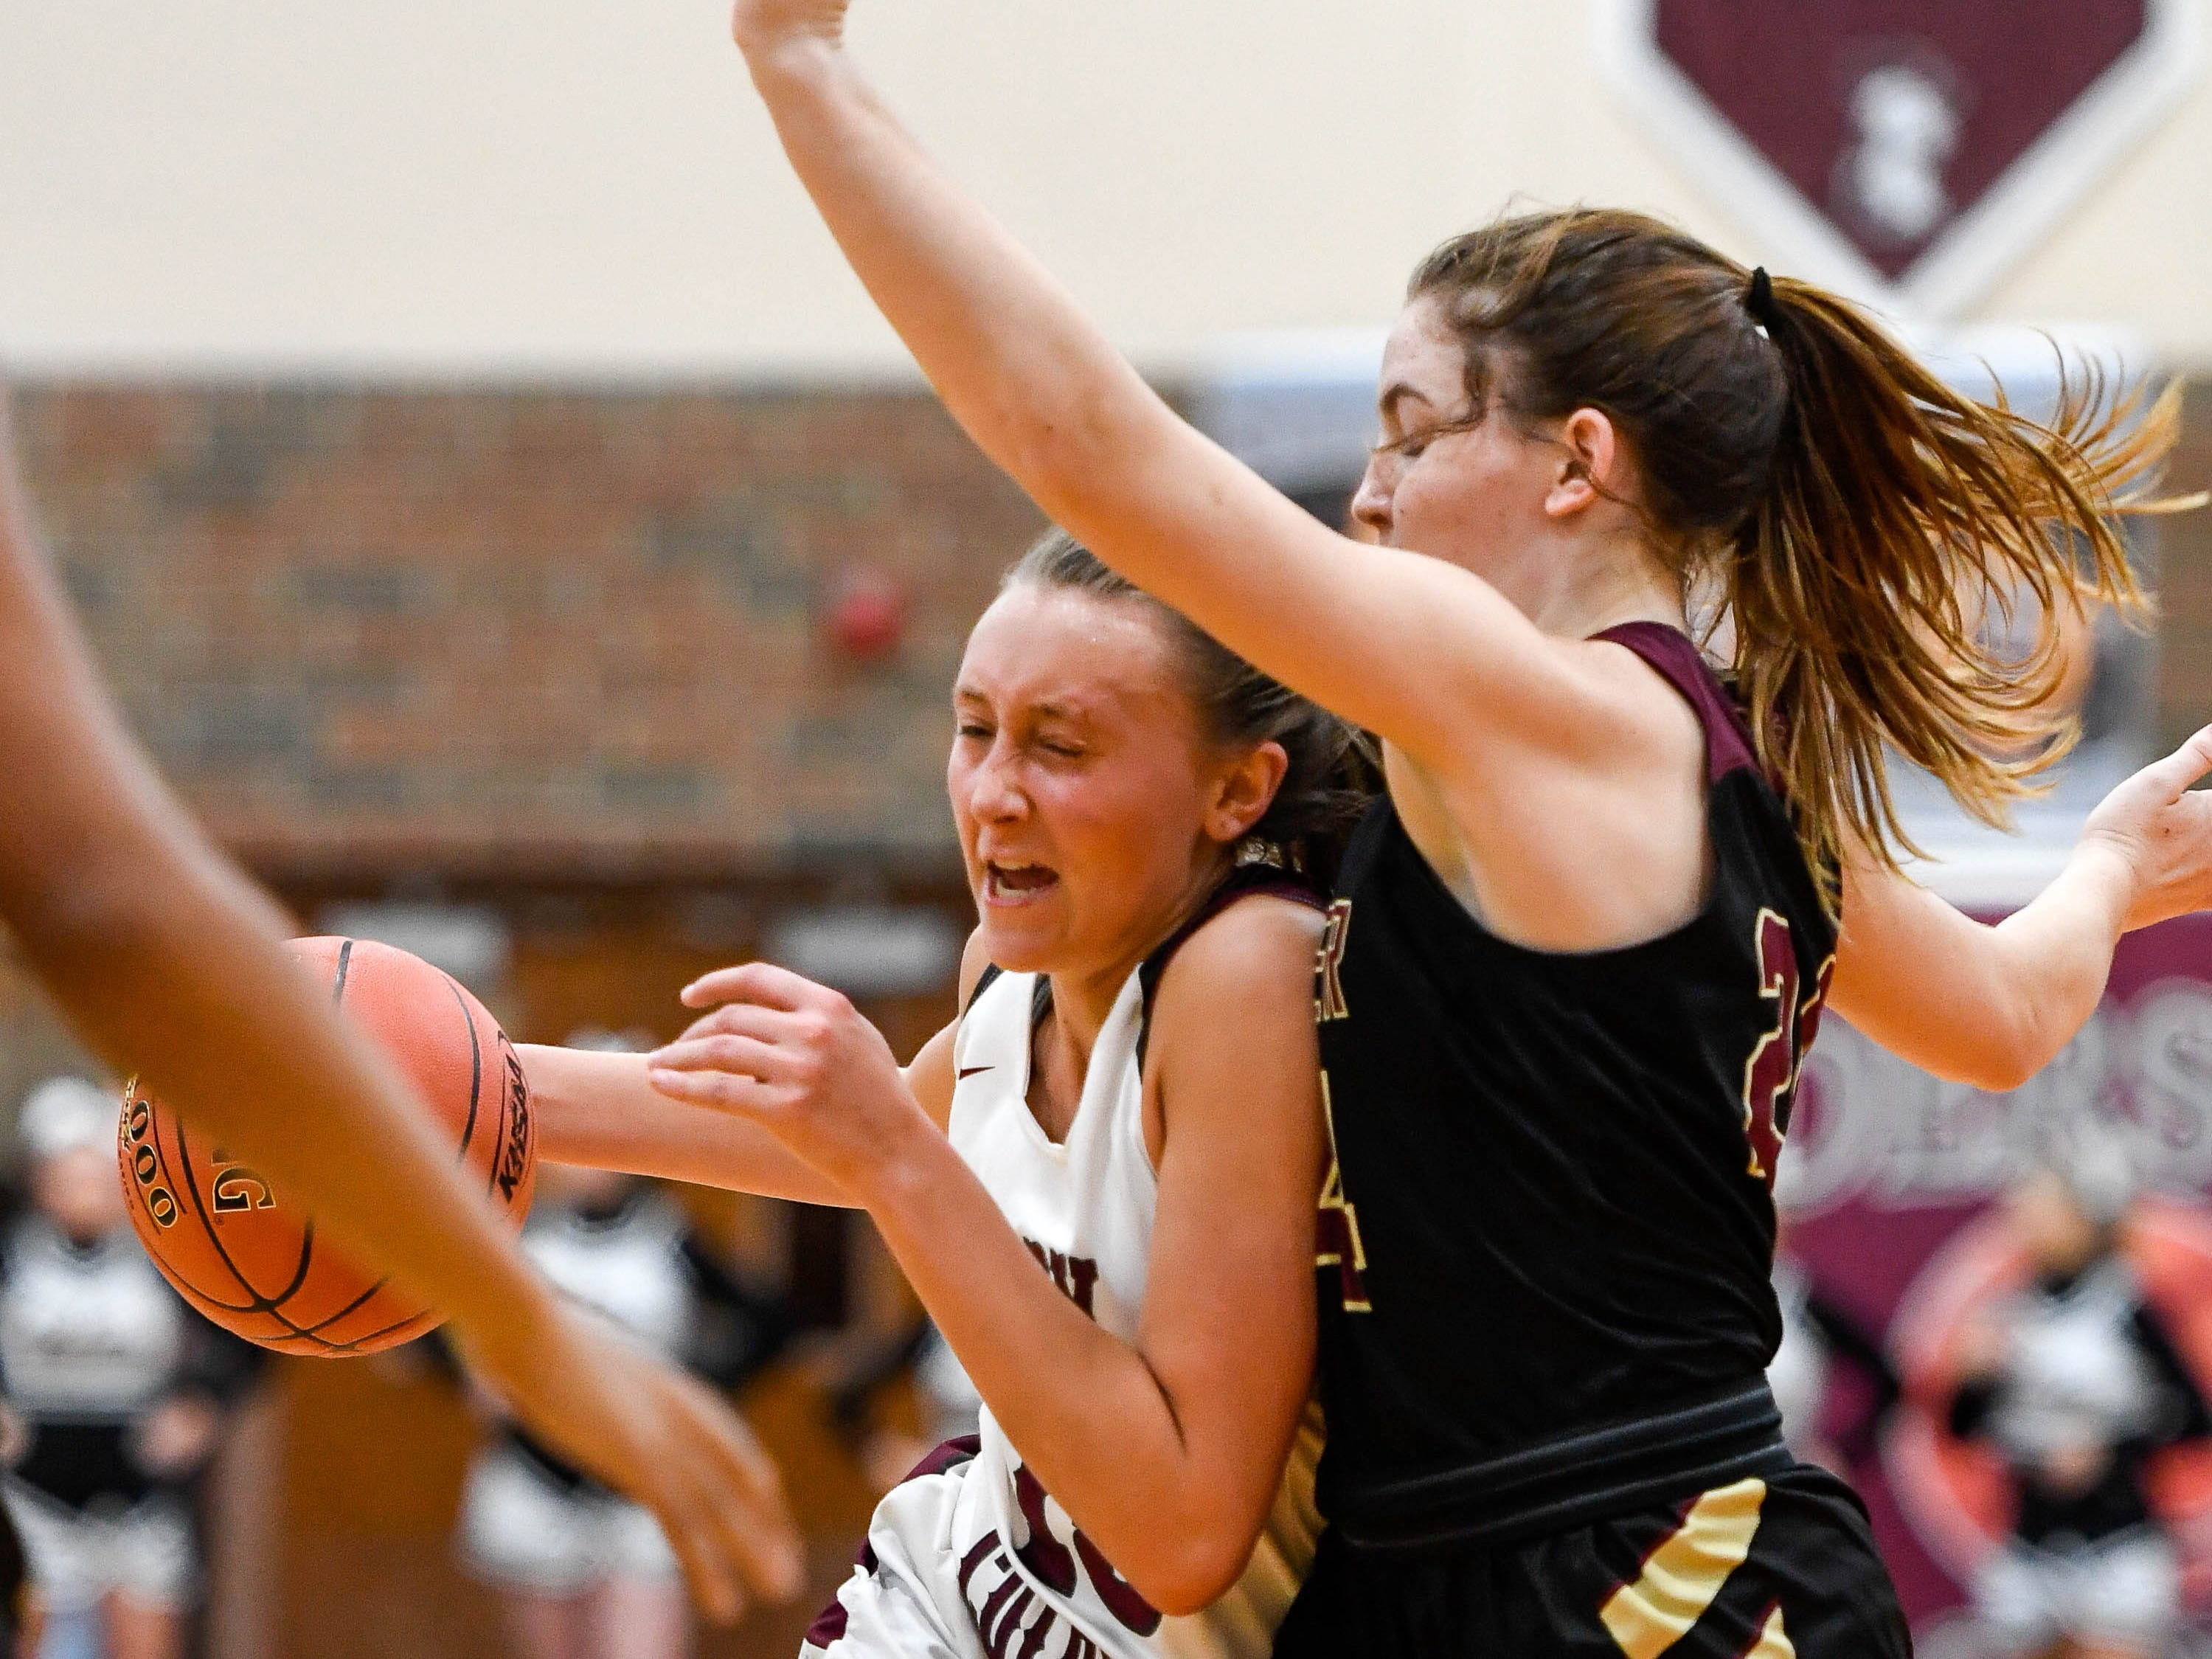 Henderson County's Alyssa Dickson (15) drives to the basket against Webster County's Adeline McDyer (24) as the Henderson County Lady Colonels play 6th district rival the Webster County Lady Trojans at Henderson's Colonel Gym Tuesday, January 8, 2019.